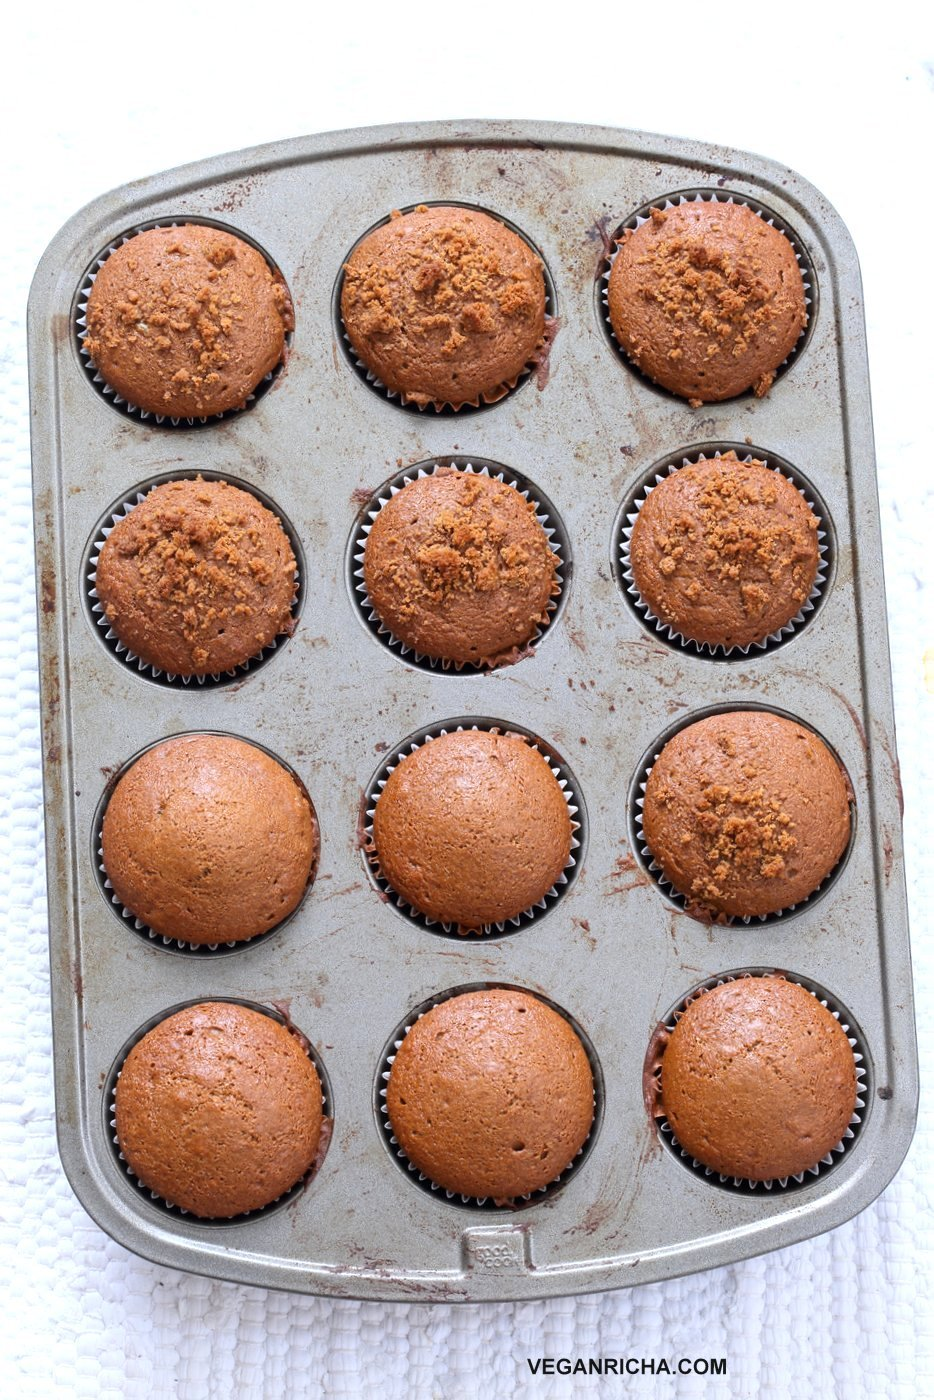 Soft Moist Triple Ginger Gingerbread Muffins with candied, fresh and ground ginger and gingerbread spices. This muffin batter can be made in a blender! #Vegan #Nutfree #Soyfree #Recipe #veganricha | VeganRicha.com